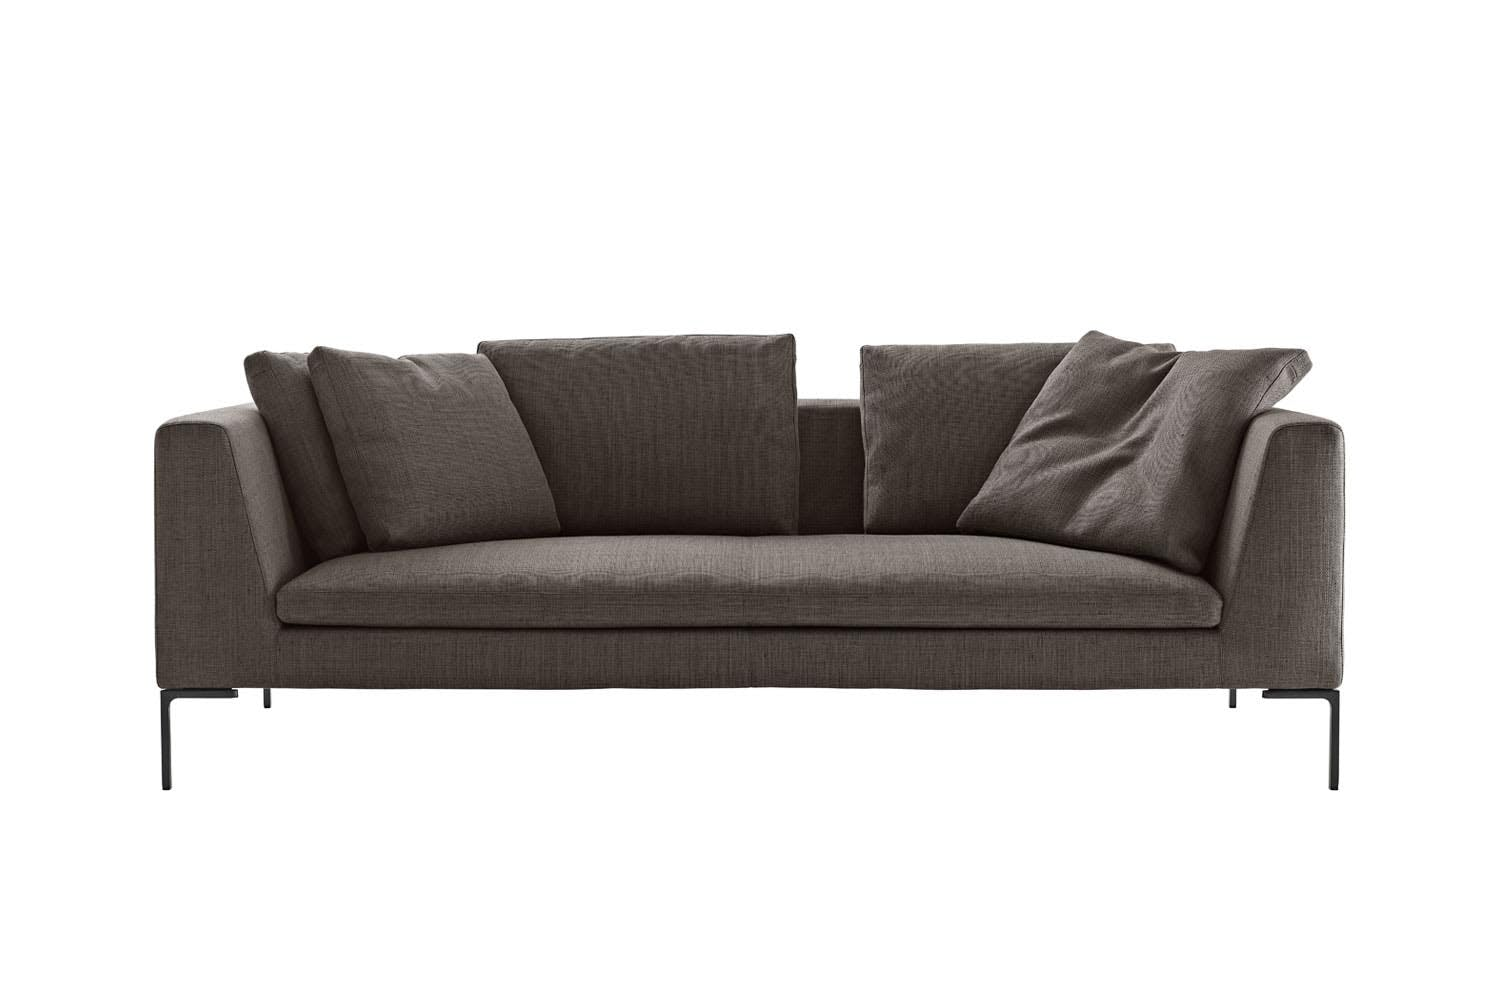 Charles sofa in fabric by antonio citterio for b b italia for Canape b b italia charles